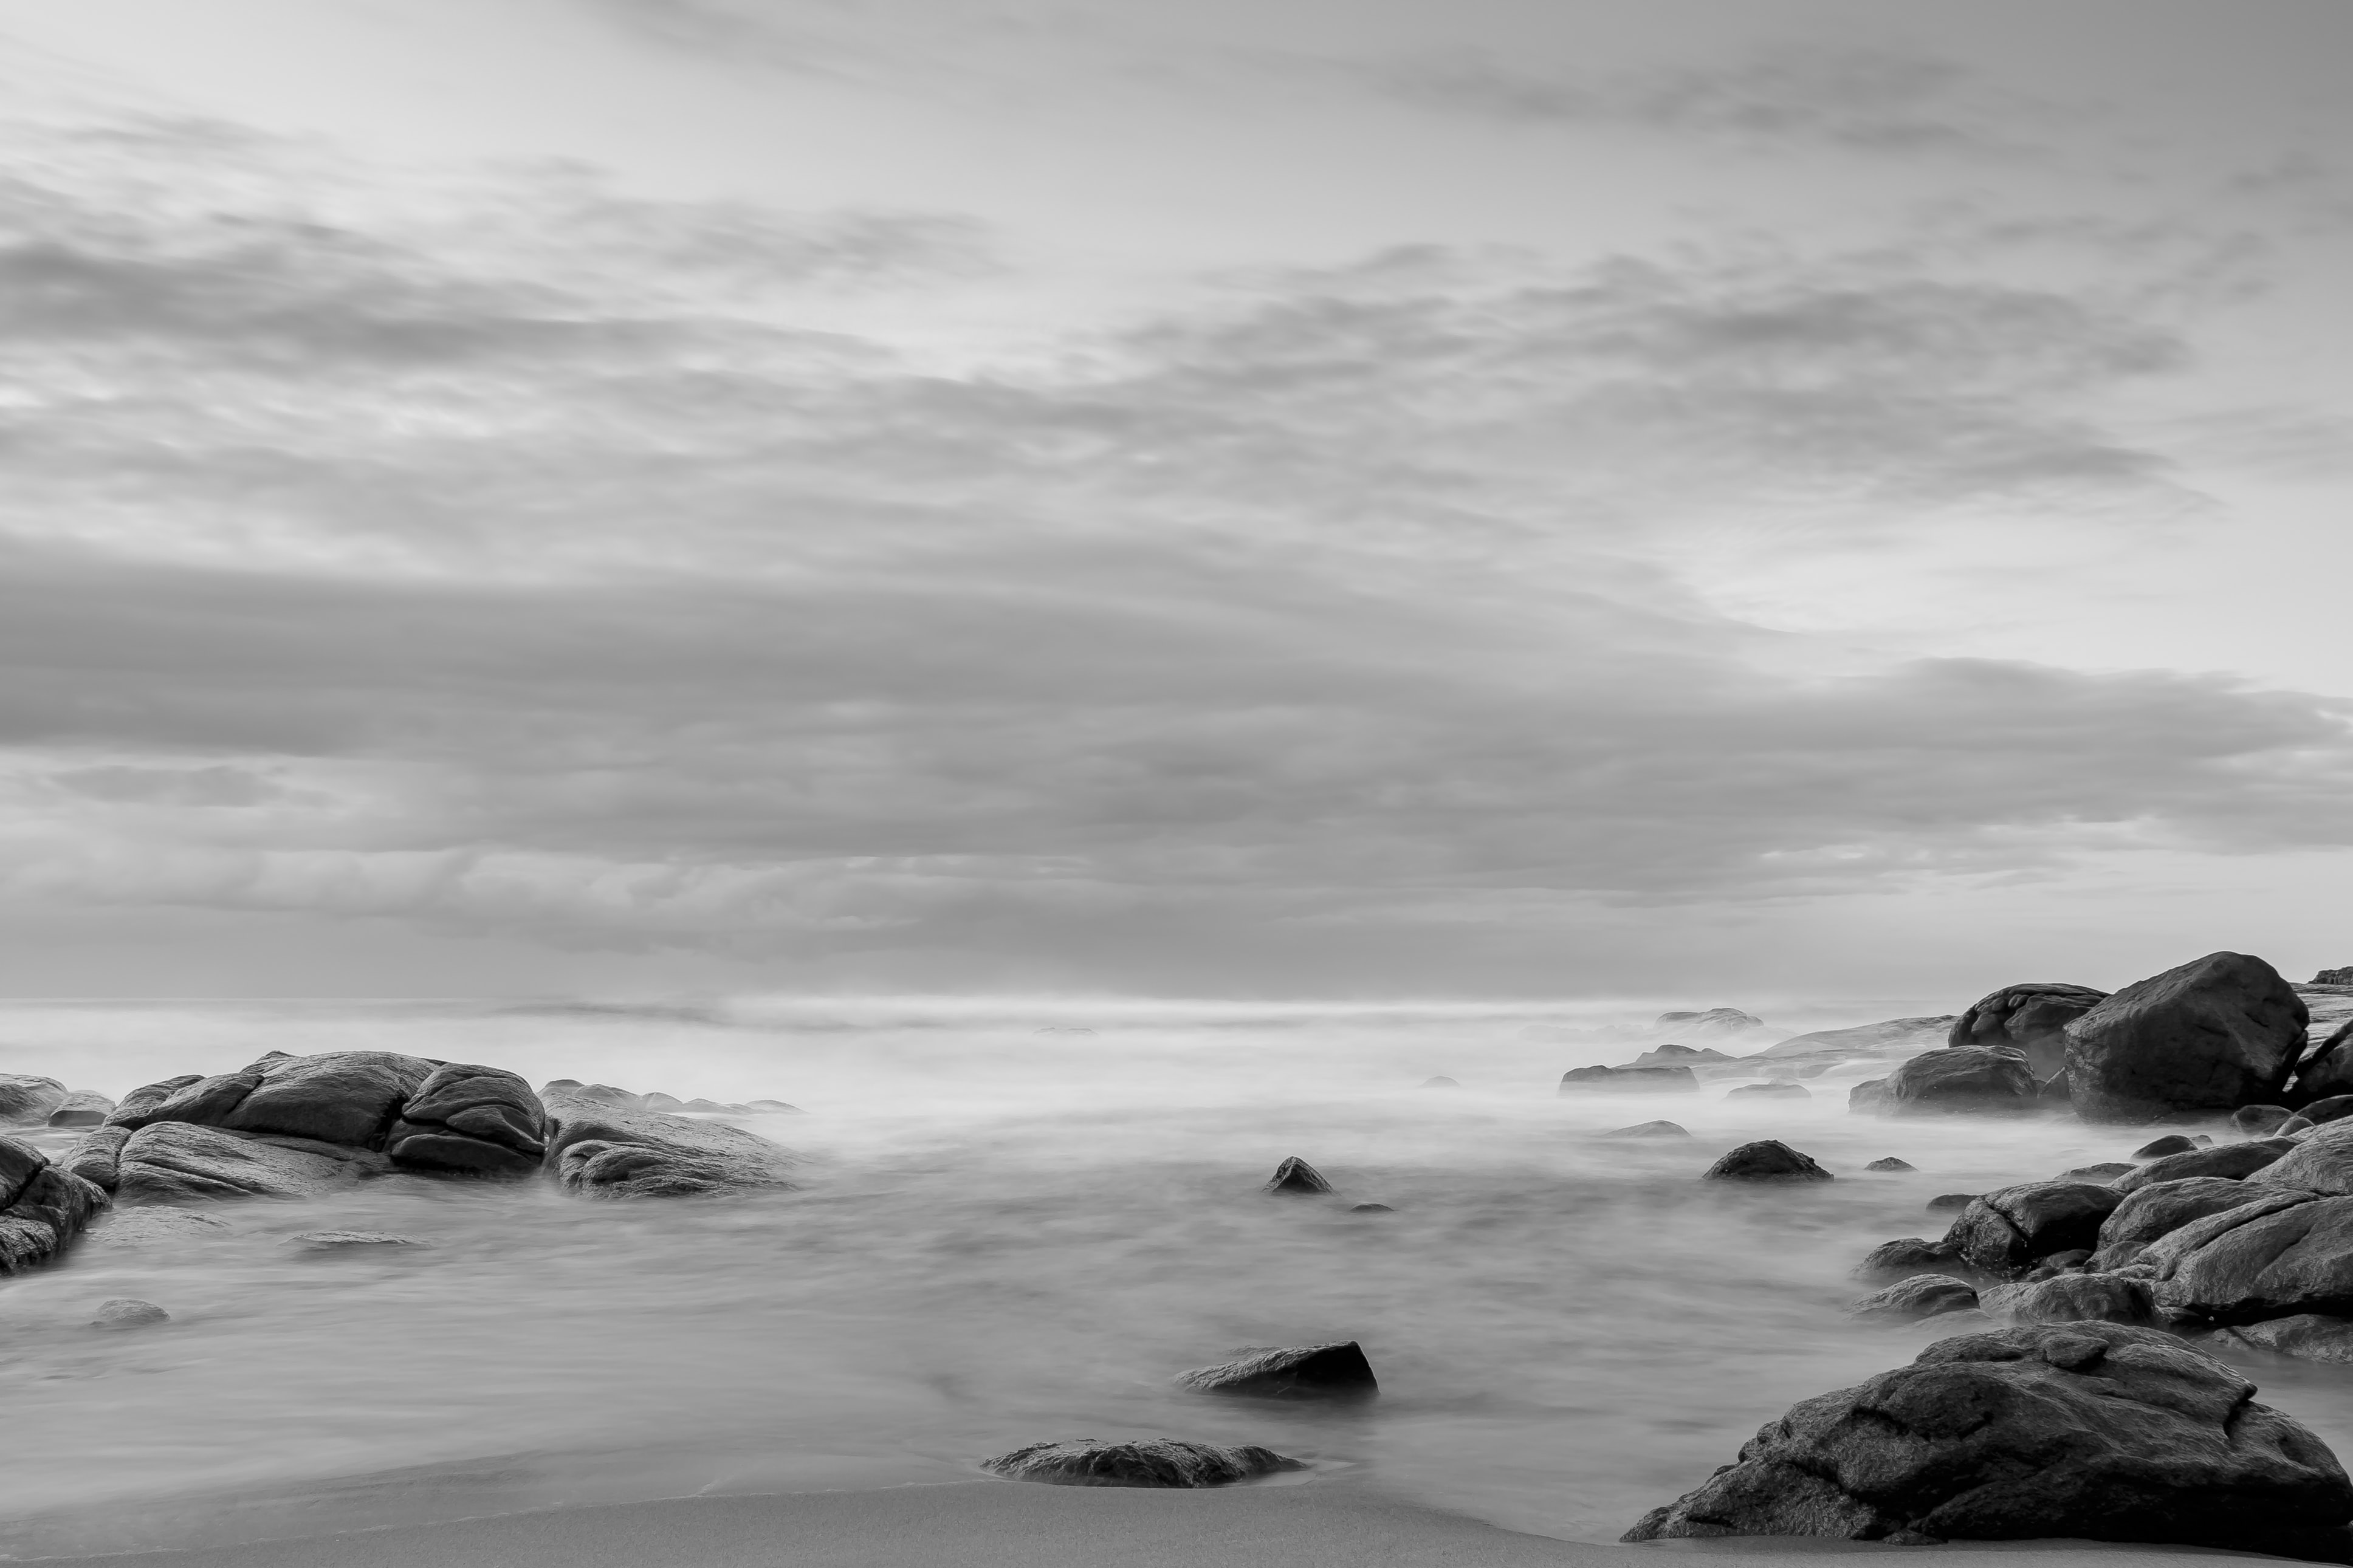 A black-and-white shot of the hazy seashore with smooth rounded rocks jutting out from the sand